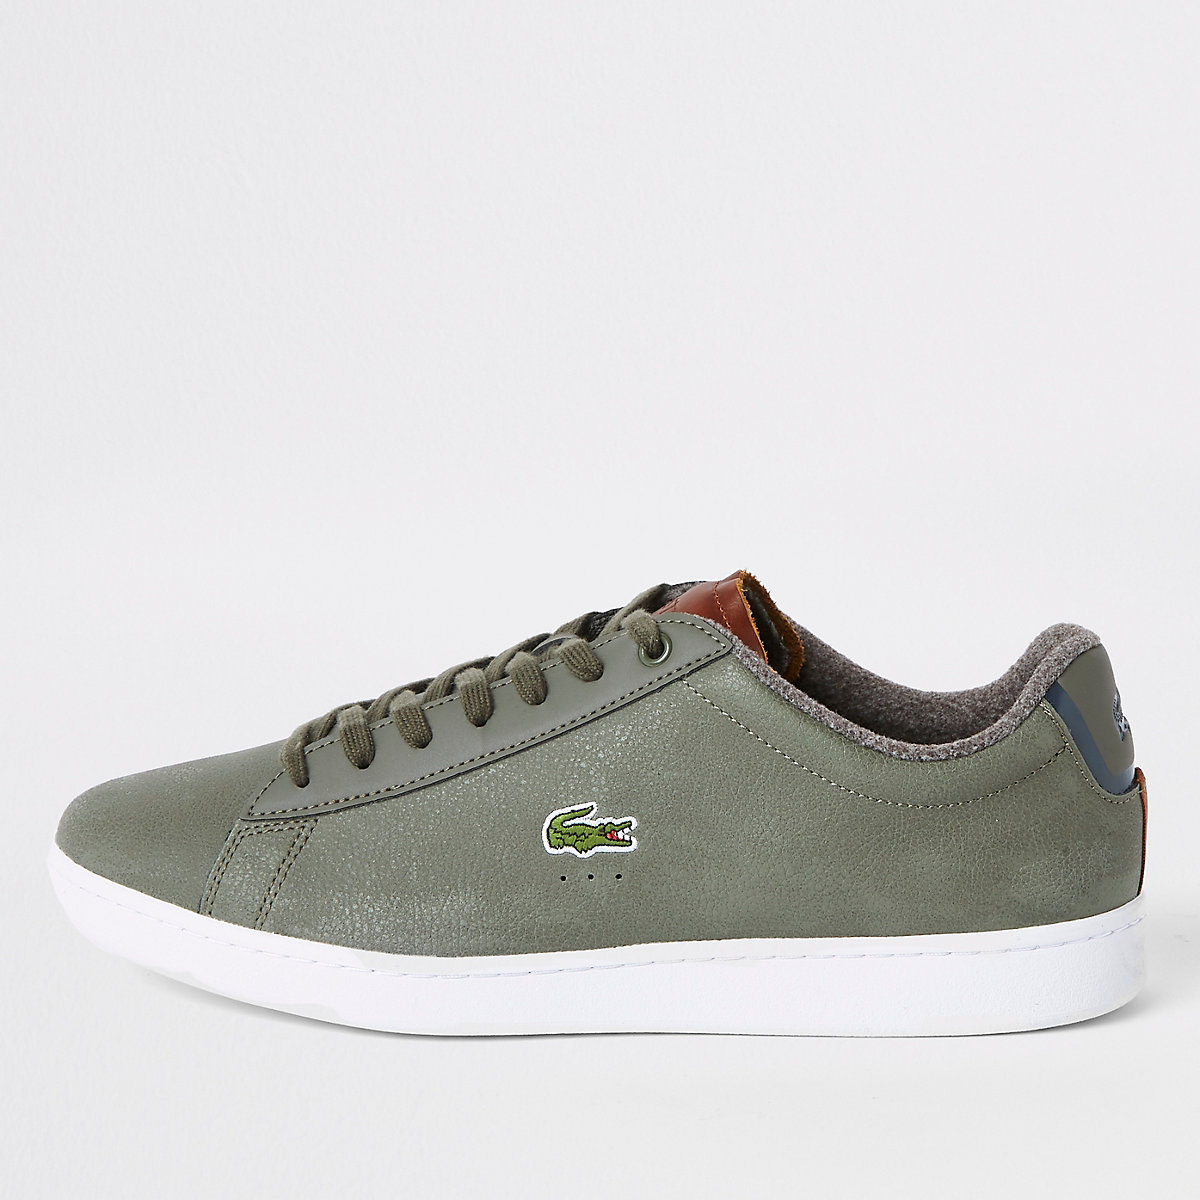 Lacoste leather green court lace-up sneakers